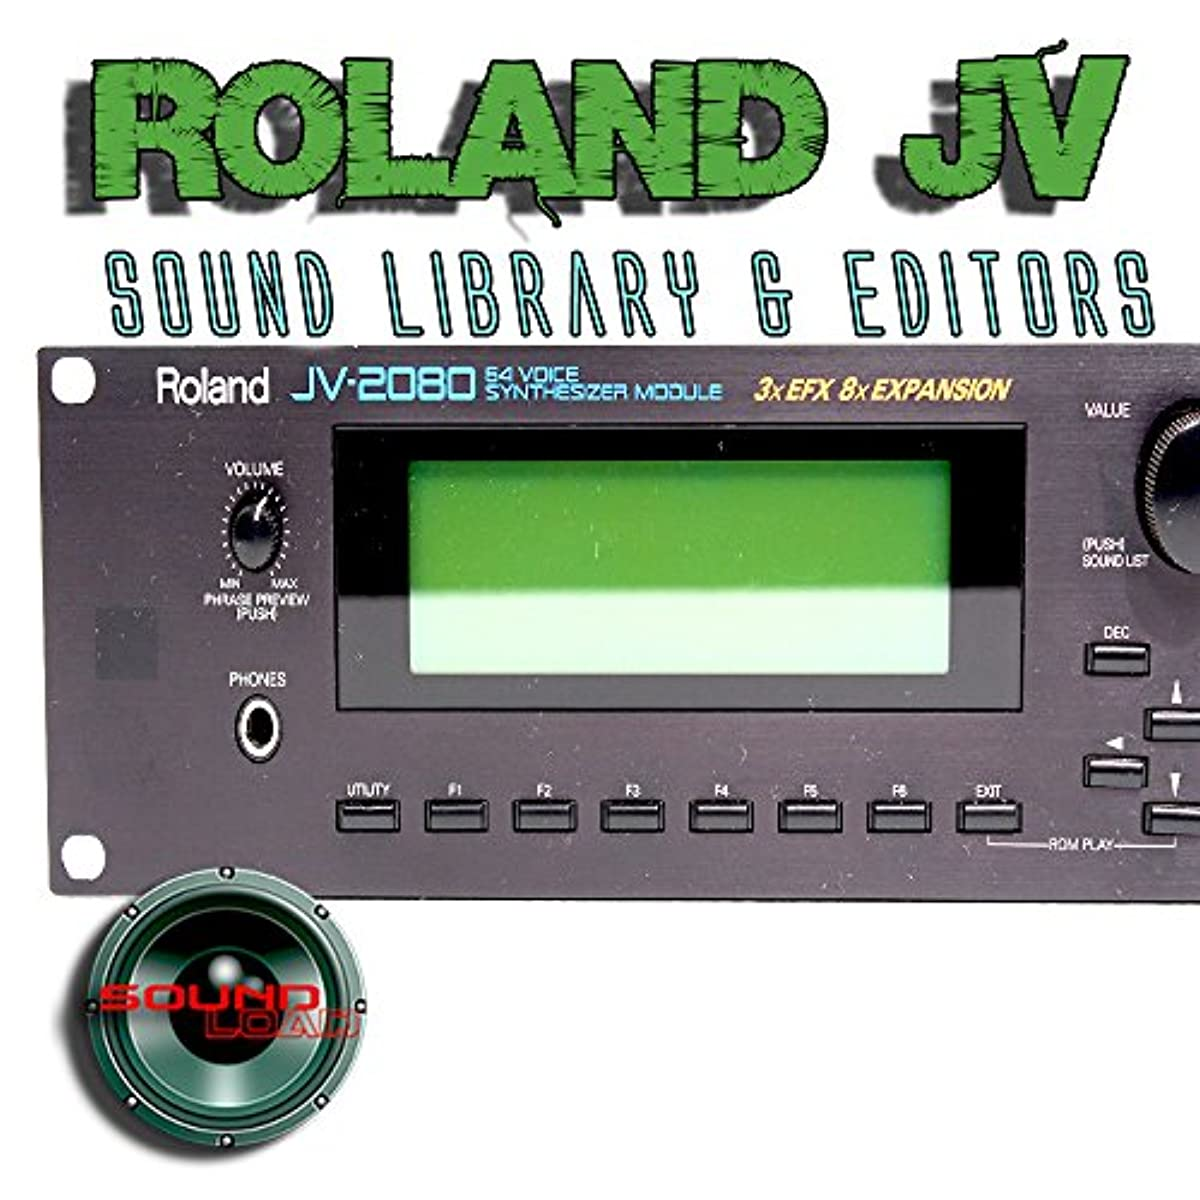 [해외] ROLAND JV-1010/1080/2080 FACTORY & NEW CREATED SOUND LIBRARY & EDITORS ON CD OR FOR DOWNLOAD